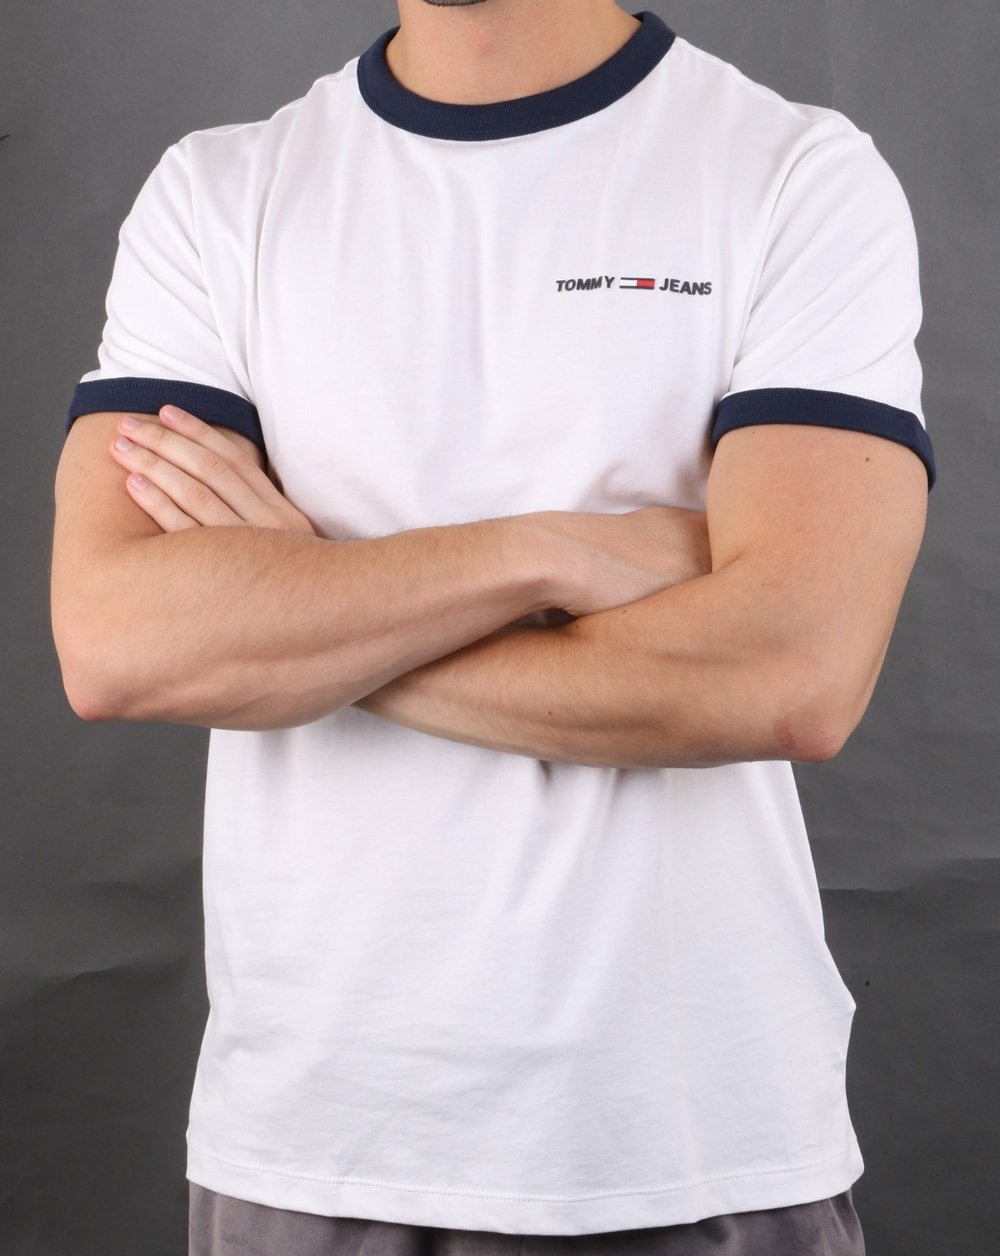 Tommy Hilfiger Ringer T-Shirt in White /& Navy short sleeve crew tee